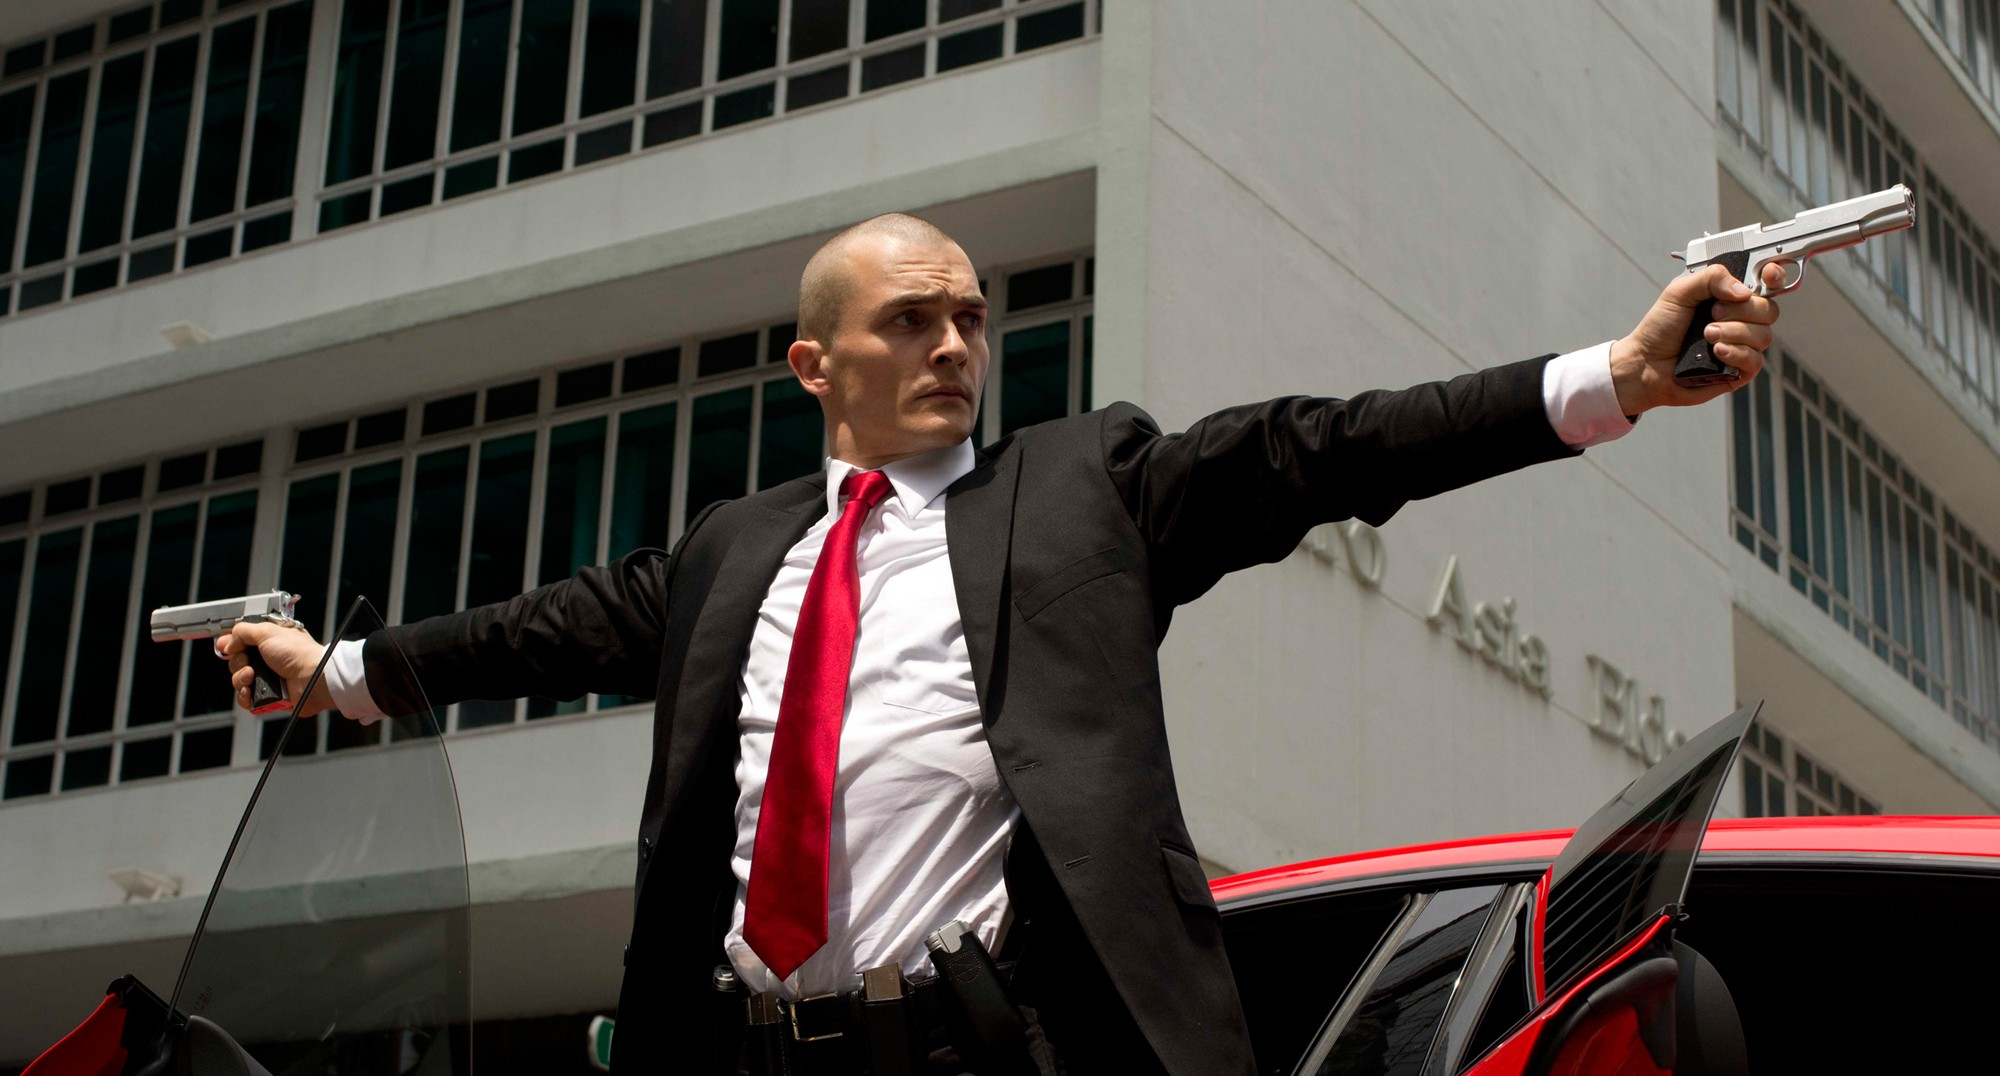 gallery hitman3 gallery image - Agent 47 is Back with a brand new Hitman Movie [TRAILER]